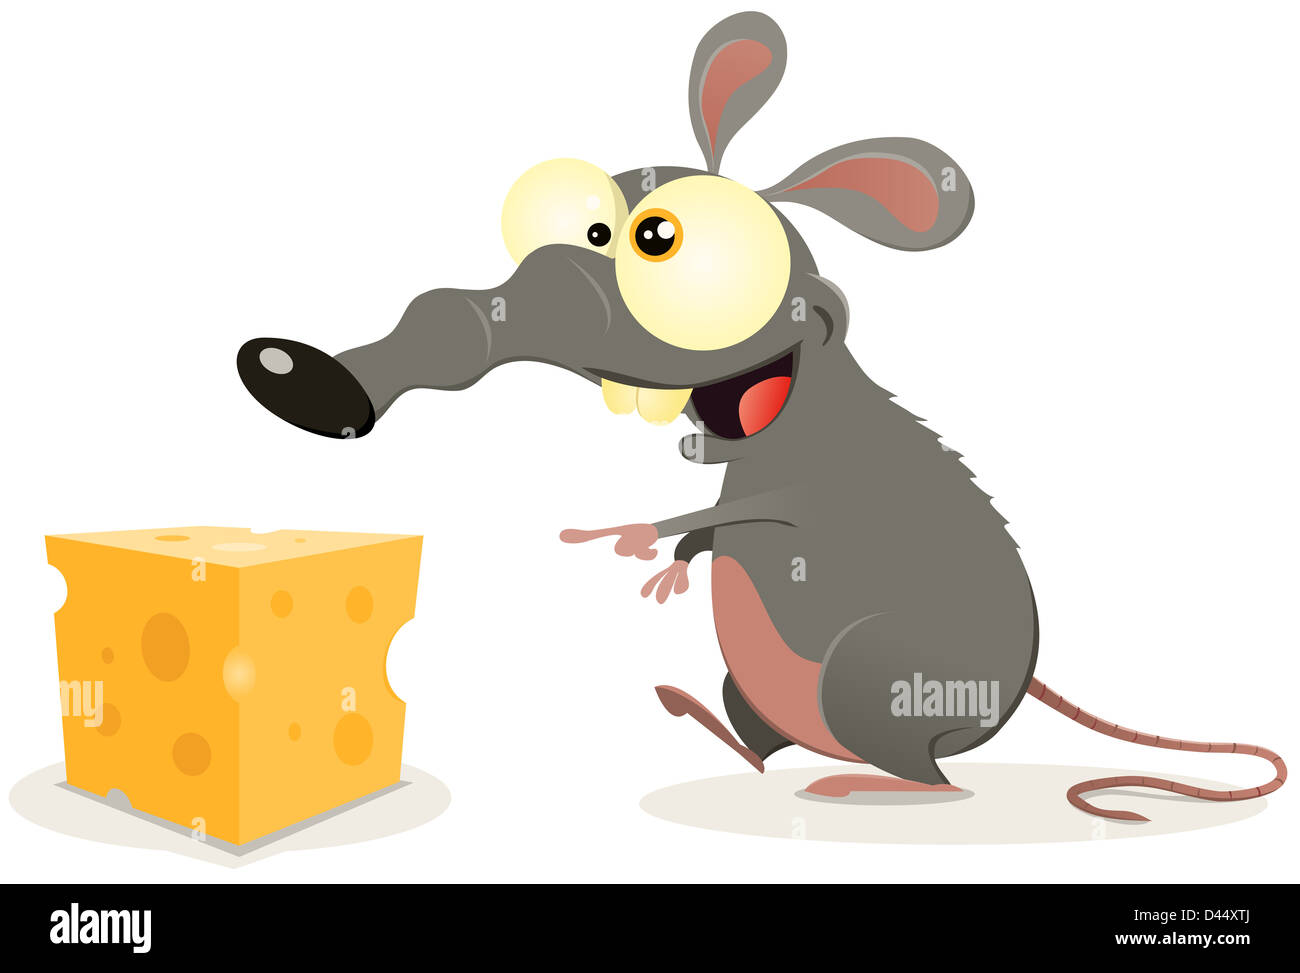 Cartoon Mouse With Cheese Stockfotos & Cartoon Mouse With Cheese ...